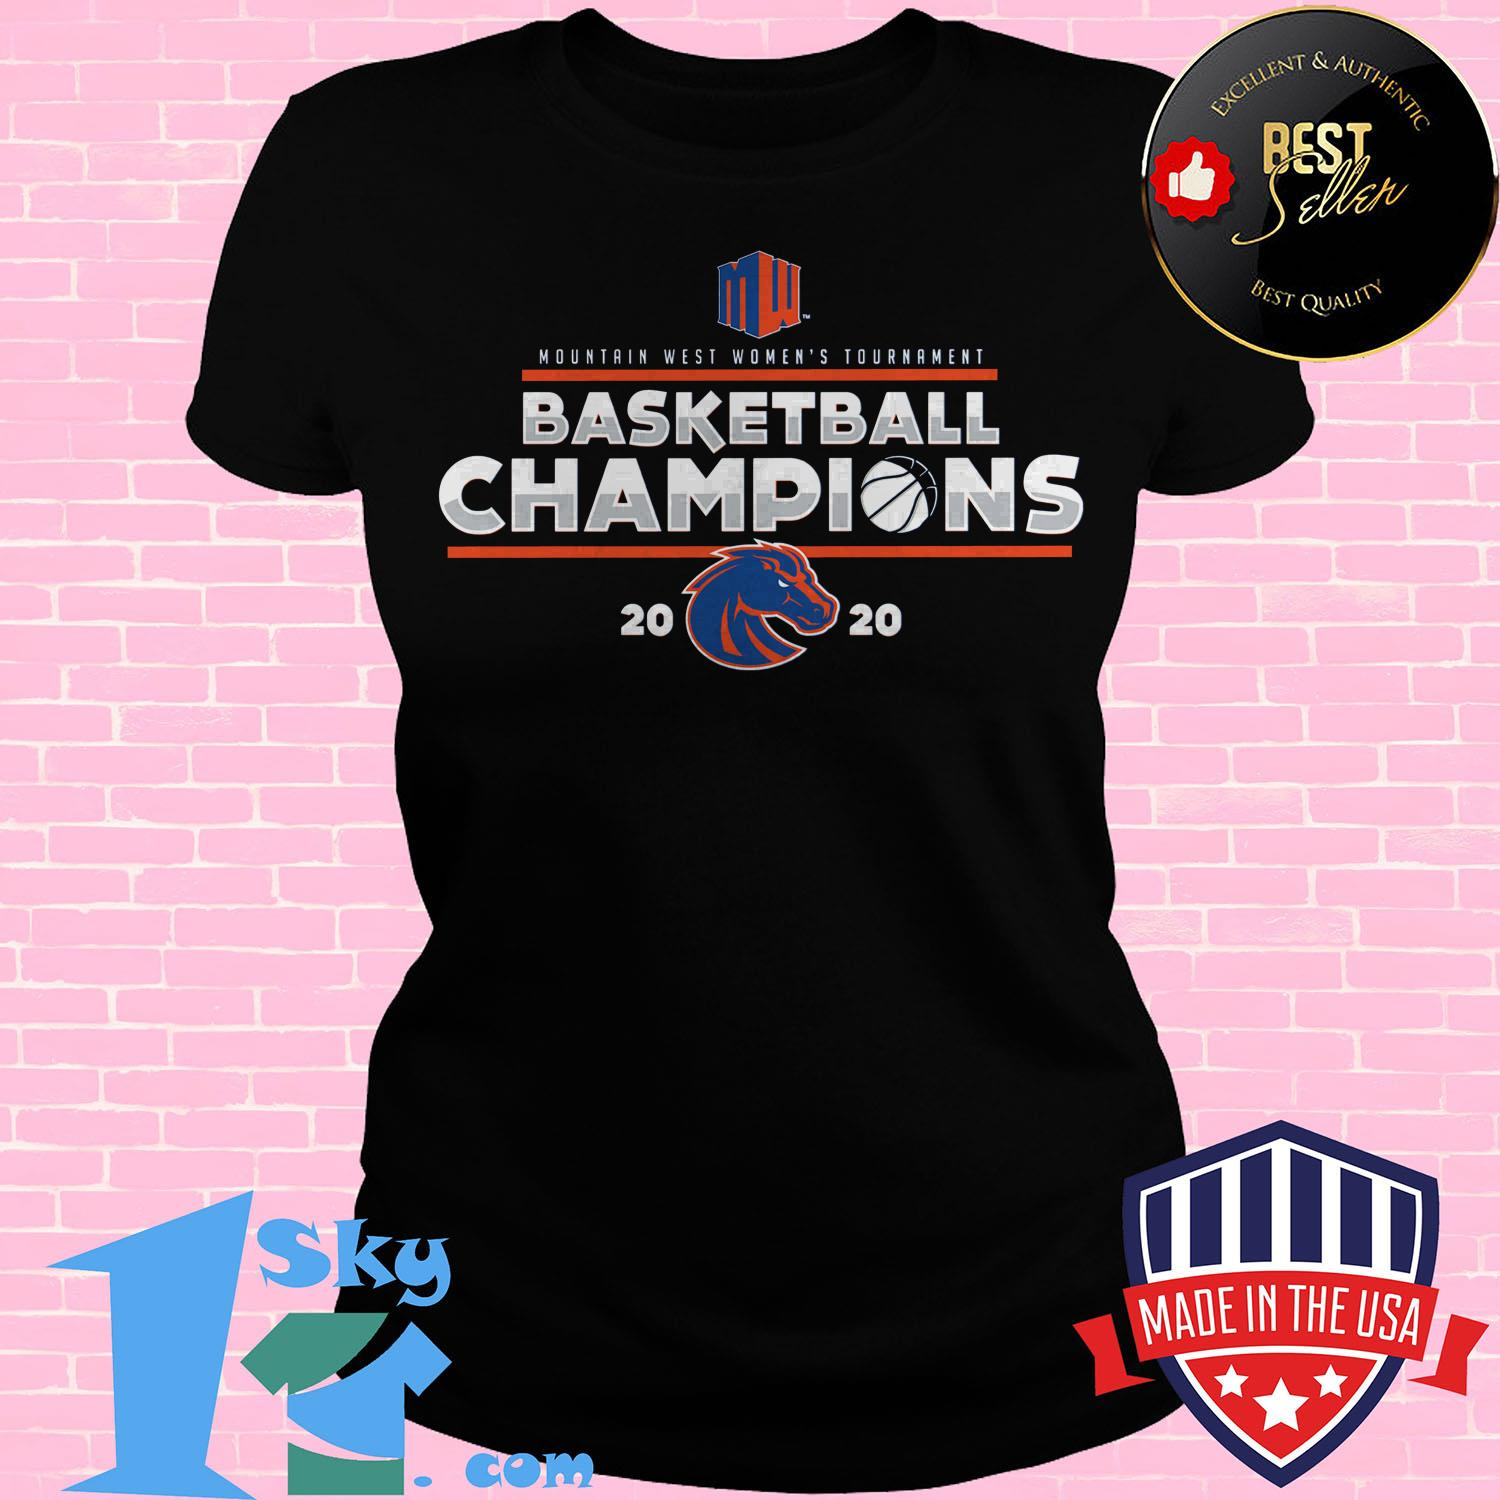 mountain west womens basketball conference tournament champions 2020 ladies tee - Mountain West Women's Basketball Conference Tournament Champions 2020 Shirt